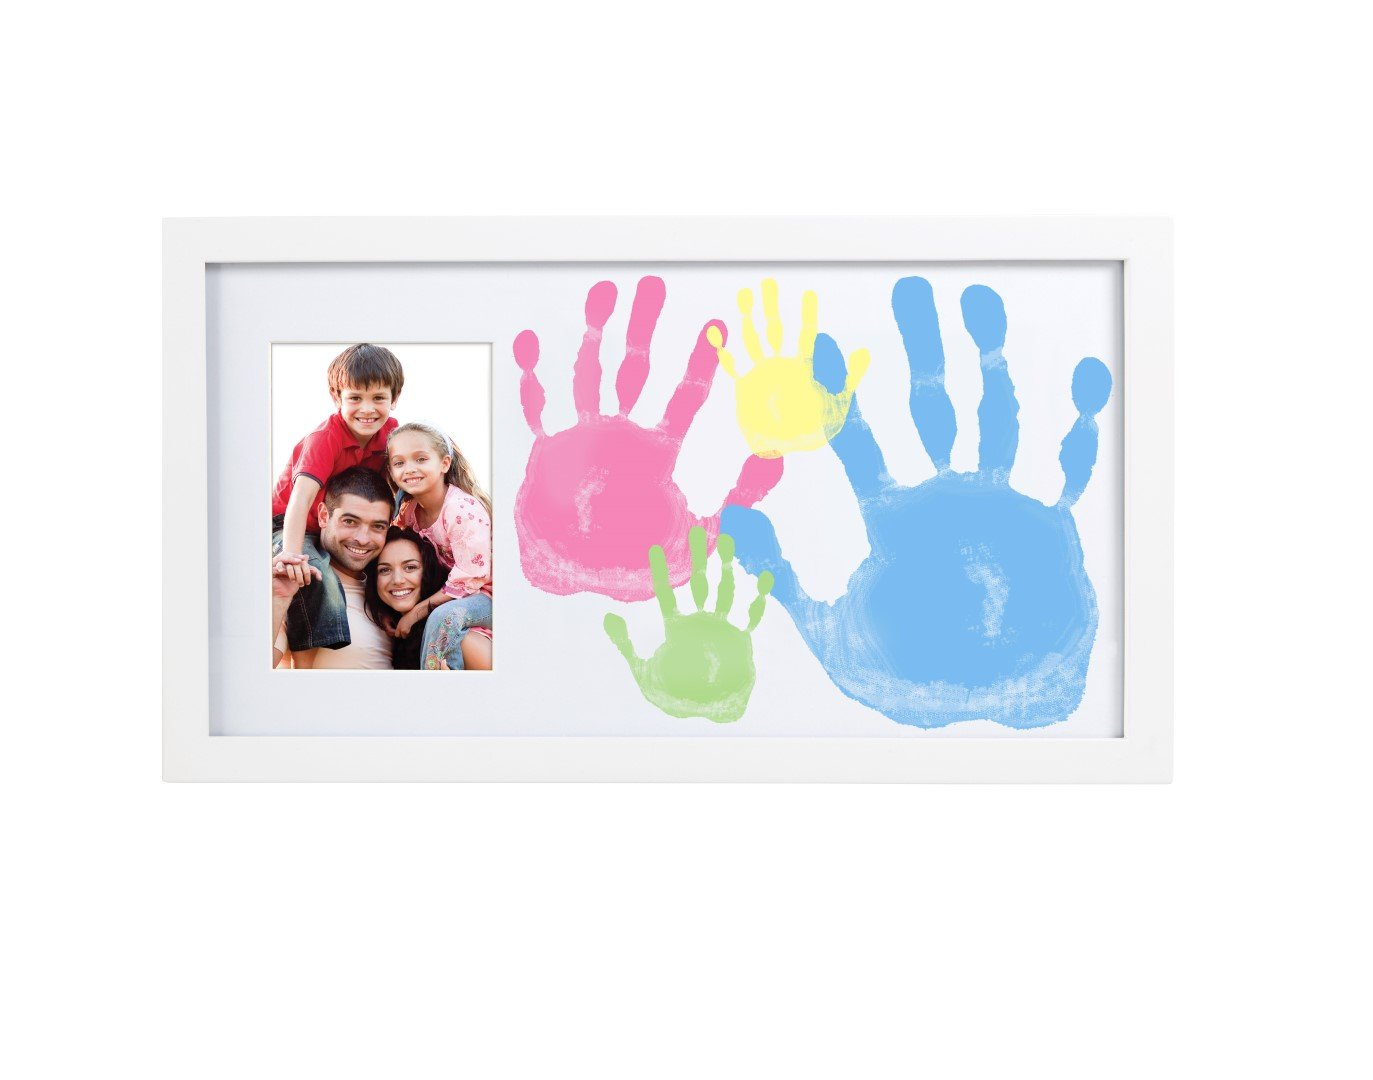 Pearhead DIY Family Handprint and Photo Keepsake Frame Kit, White by Pearhead